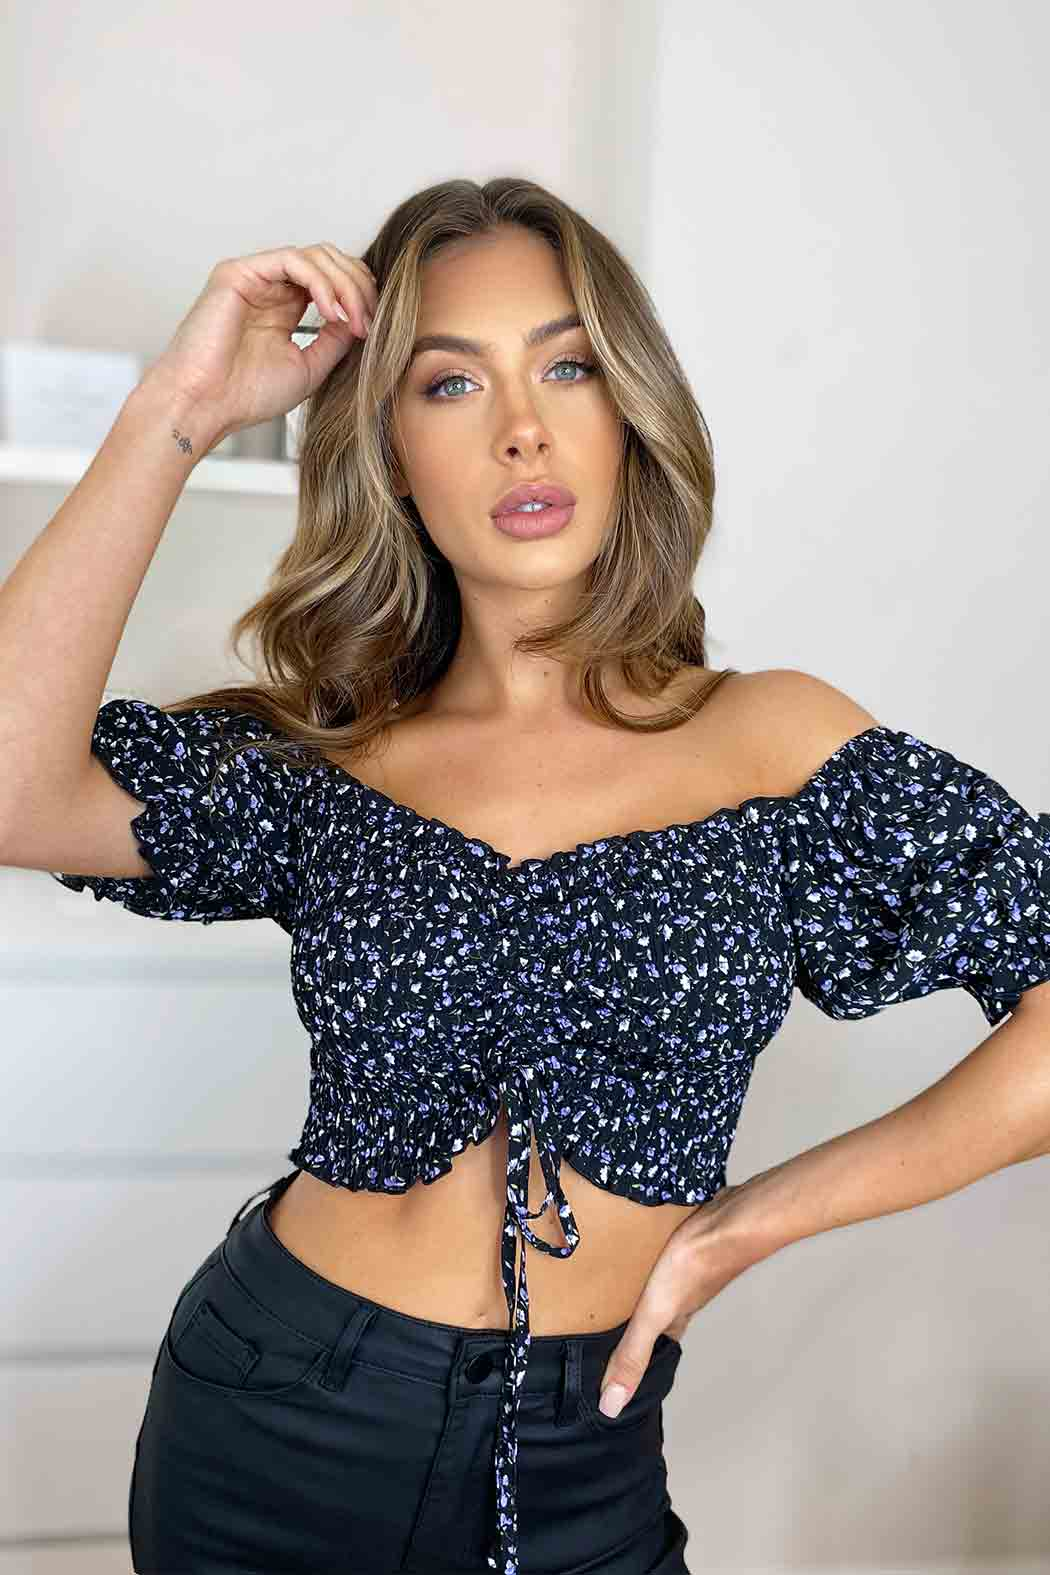 Noelle Sheered Ruched Top